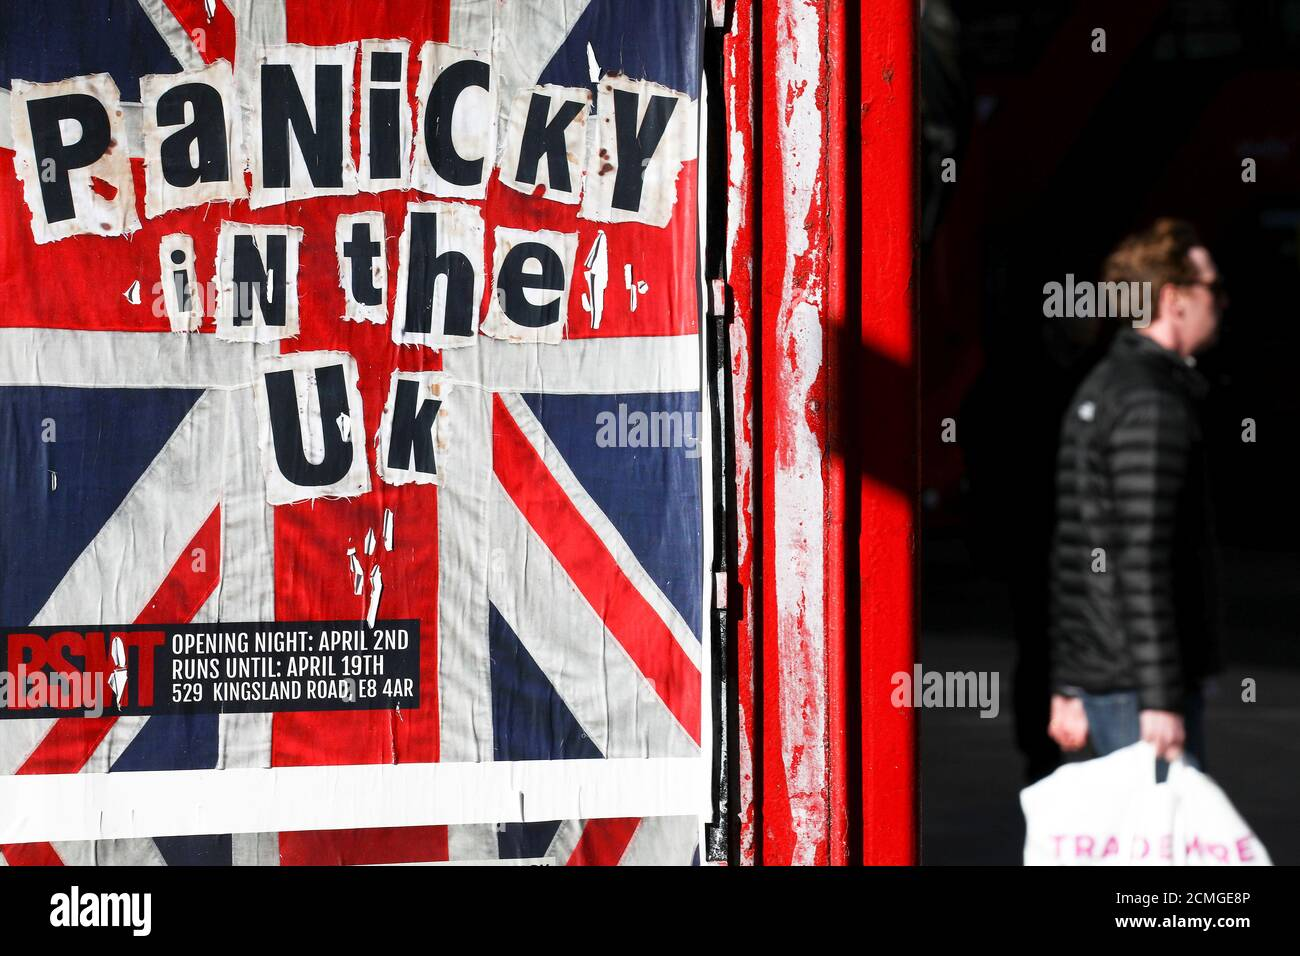 A pedestrian walks past an advertisement for 'Panicky in the UK' displayed on a phone box in the Soho district after they closed because of the spread of coronavirus disease (COVID-19), in London, Britain, March 22, 2020. REUTERS/Simon Dawson Stock Photo